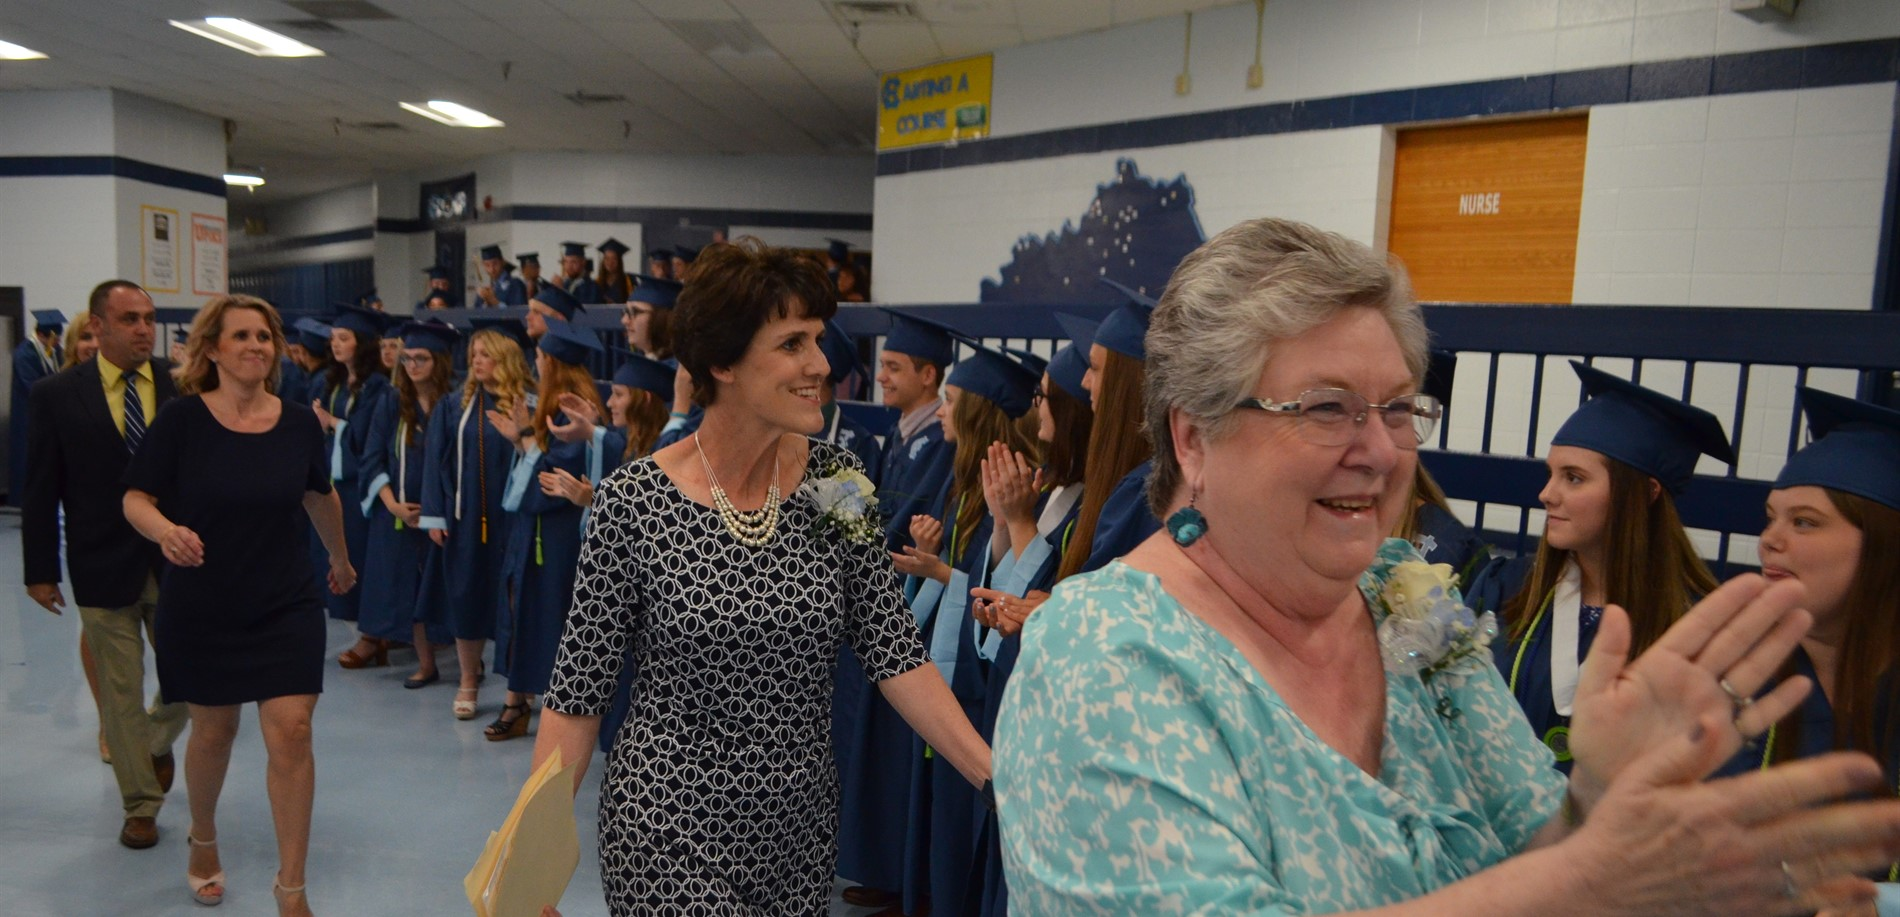 HCS Board Member Kay Sharon and Superintendent Teresa Morgan applauded graduates in their traditional